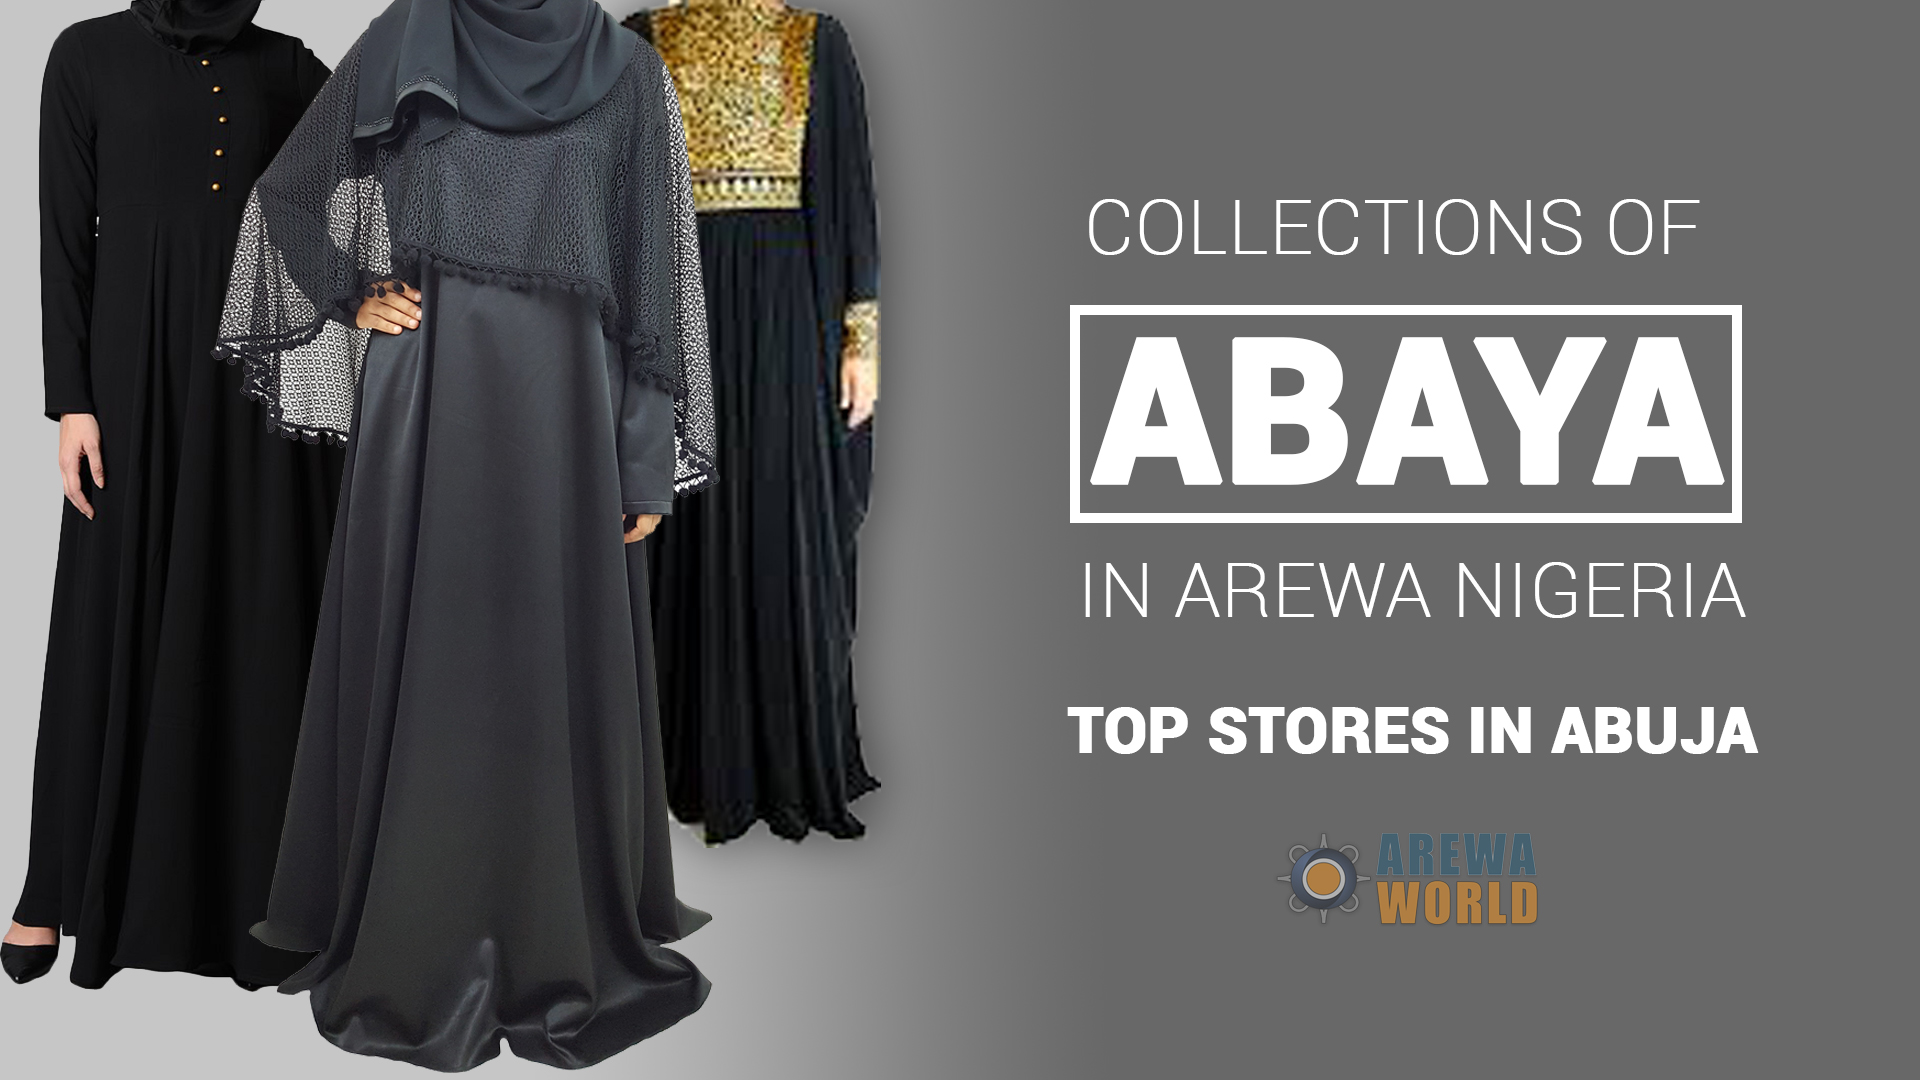 10 Abaya places in Abuja, Nigeria